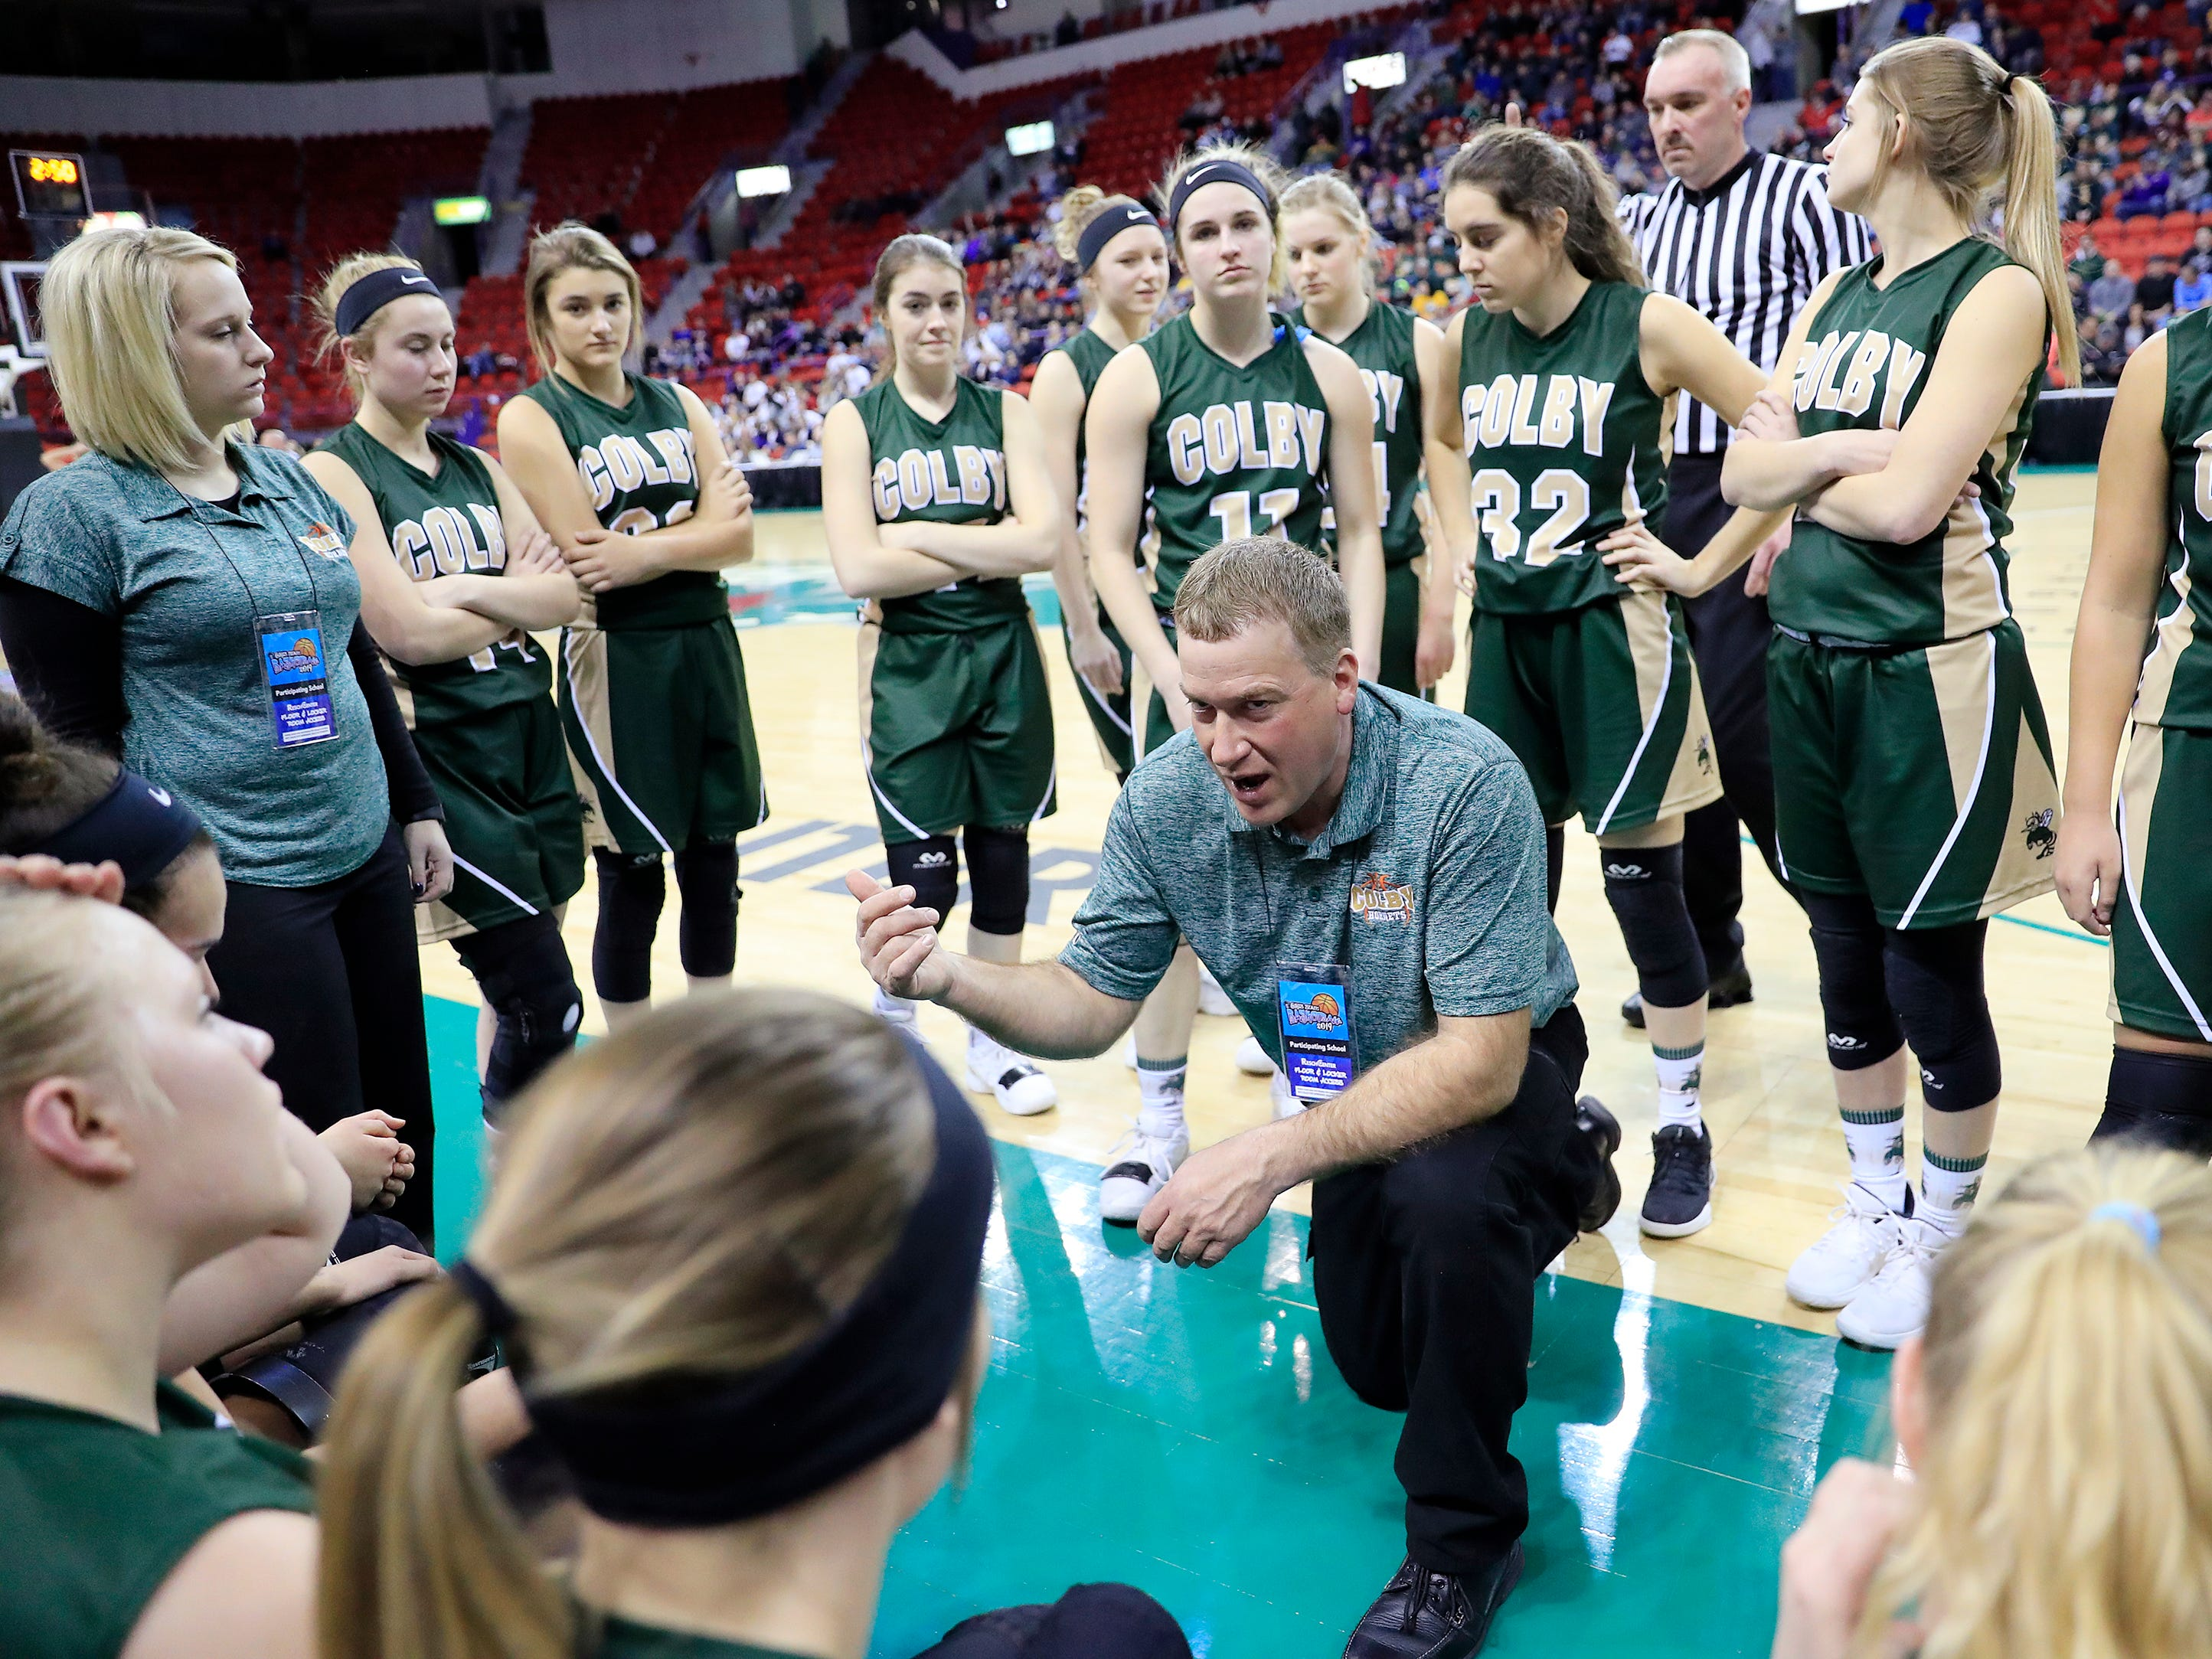 Colby head coach Randy Rau talks to his team in a pregame huddle before a Division 3 semifinal at the WIAA state girls basketball tournament at the Resch Center on Thursday, March 7, 2019, in Ashwaubenon, Wis.